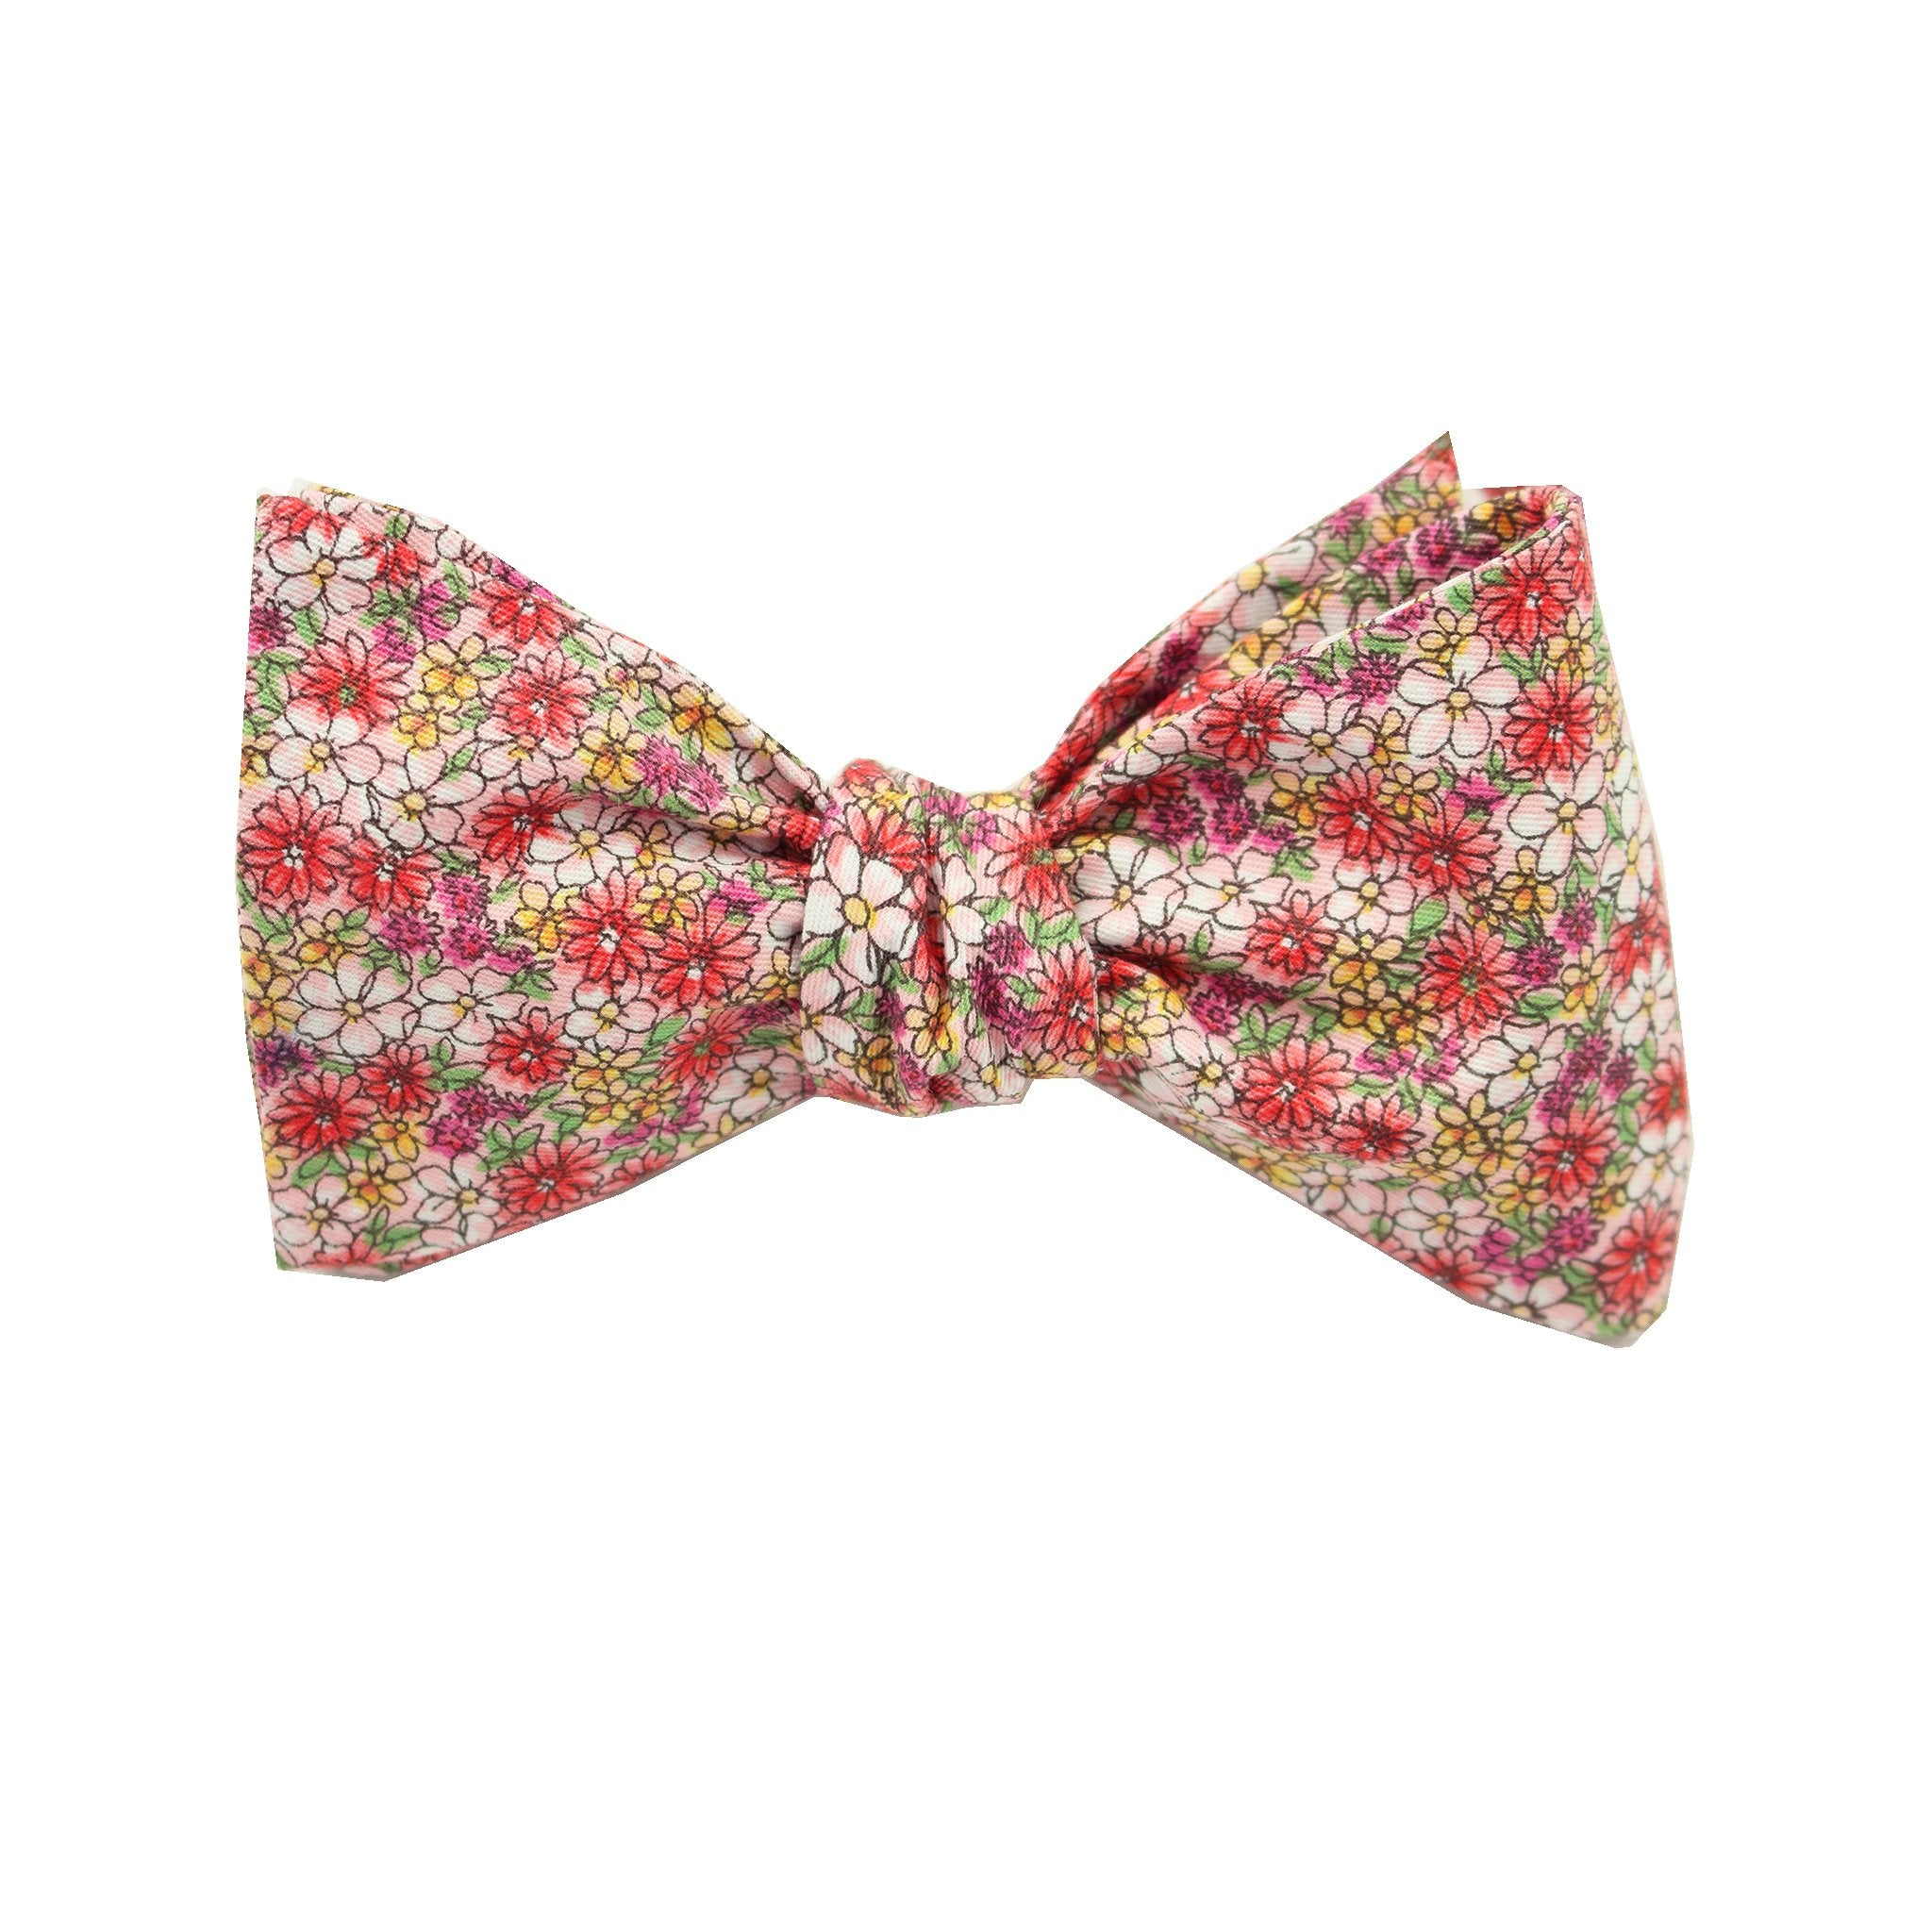 Pink Micro Floral Print Cotton Self Tie Bow Tie